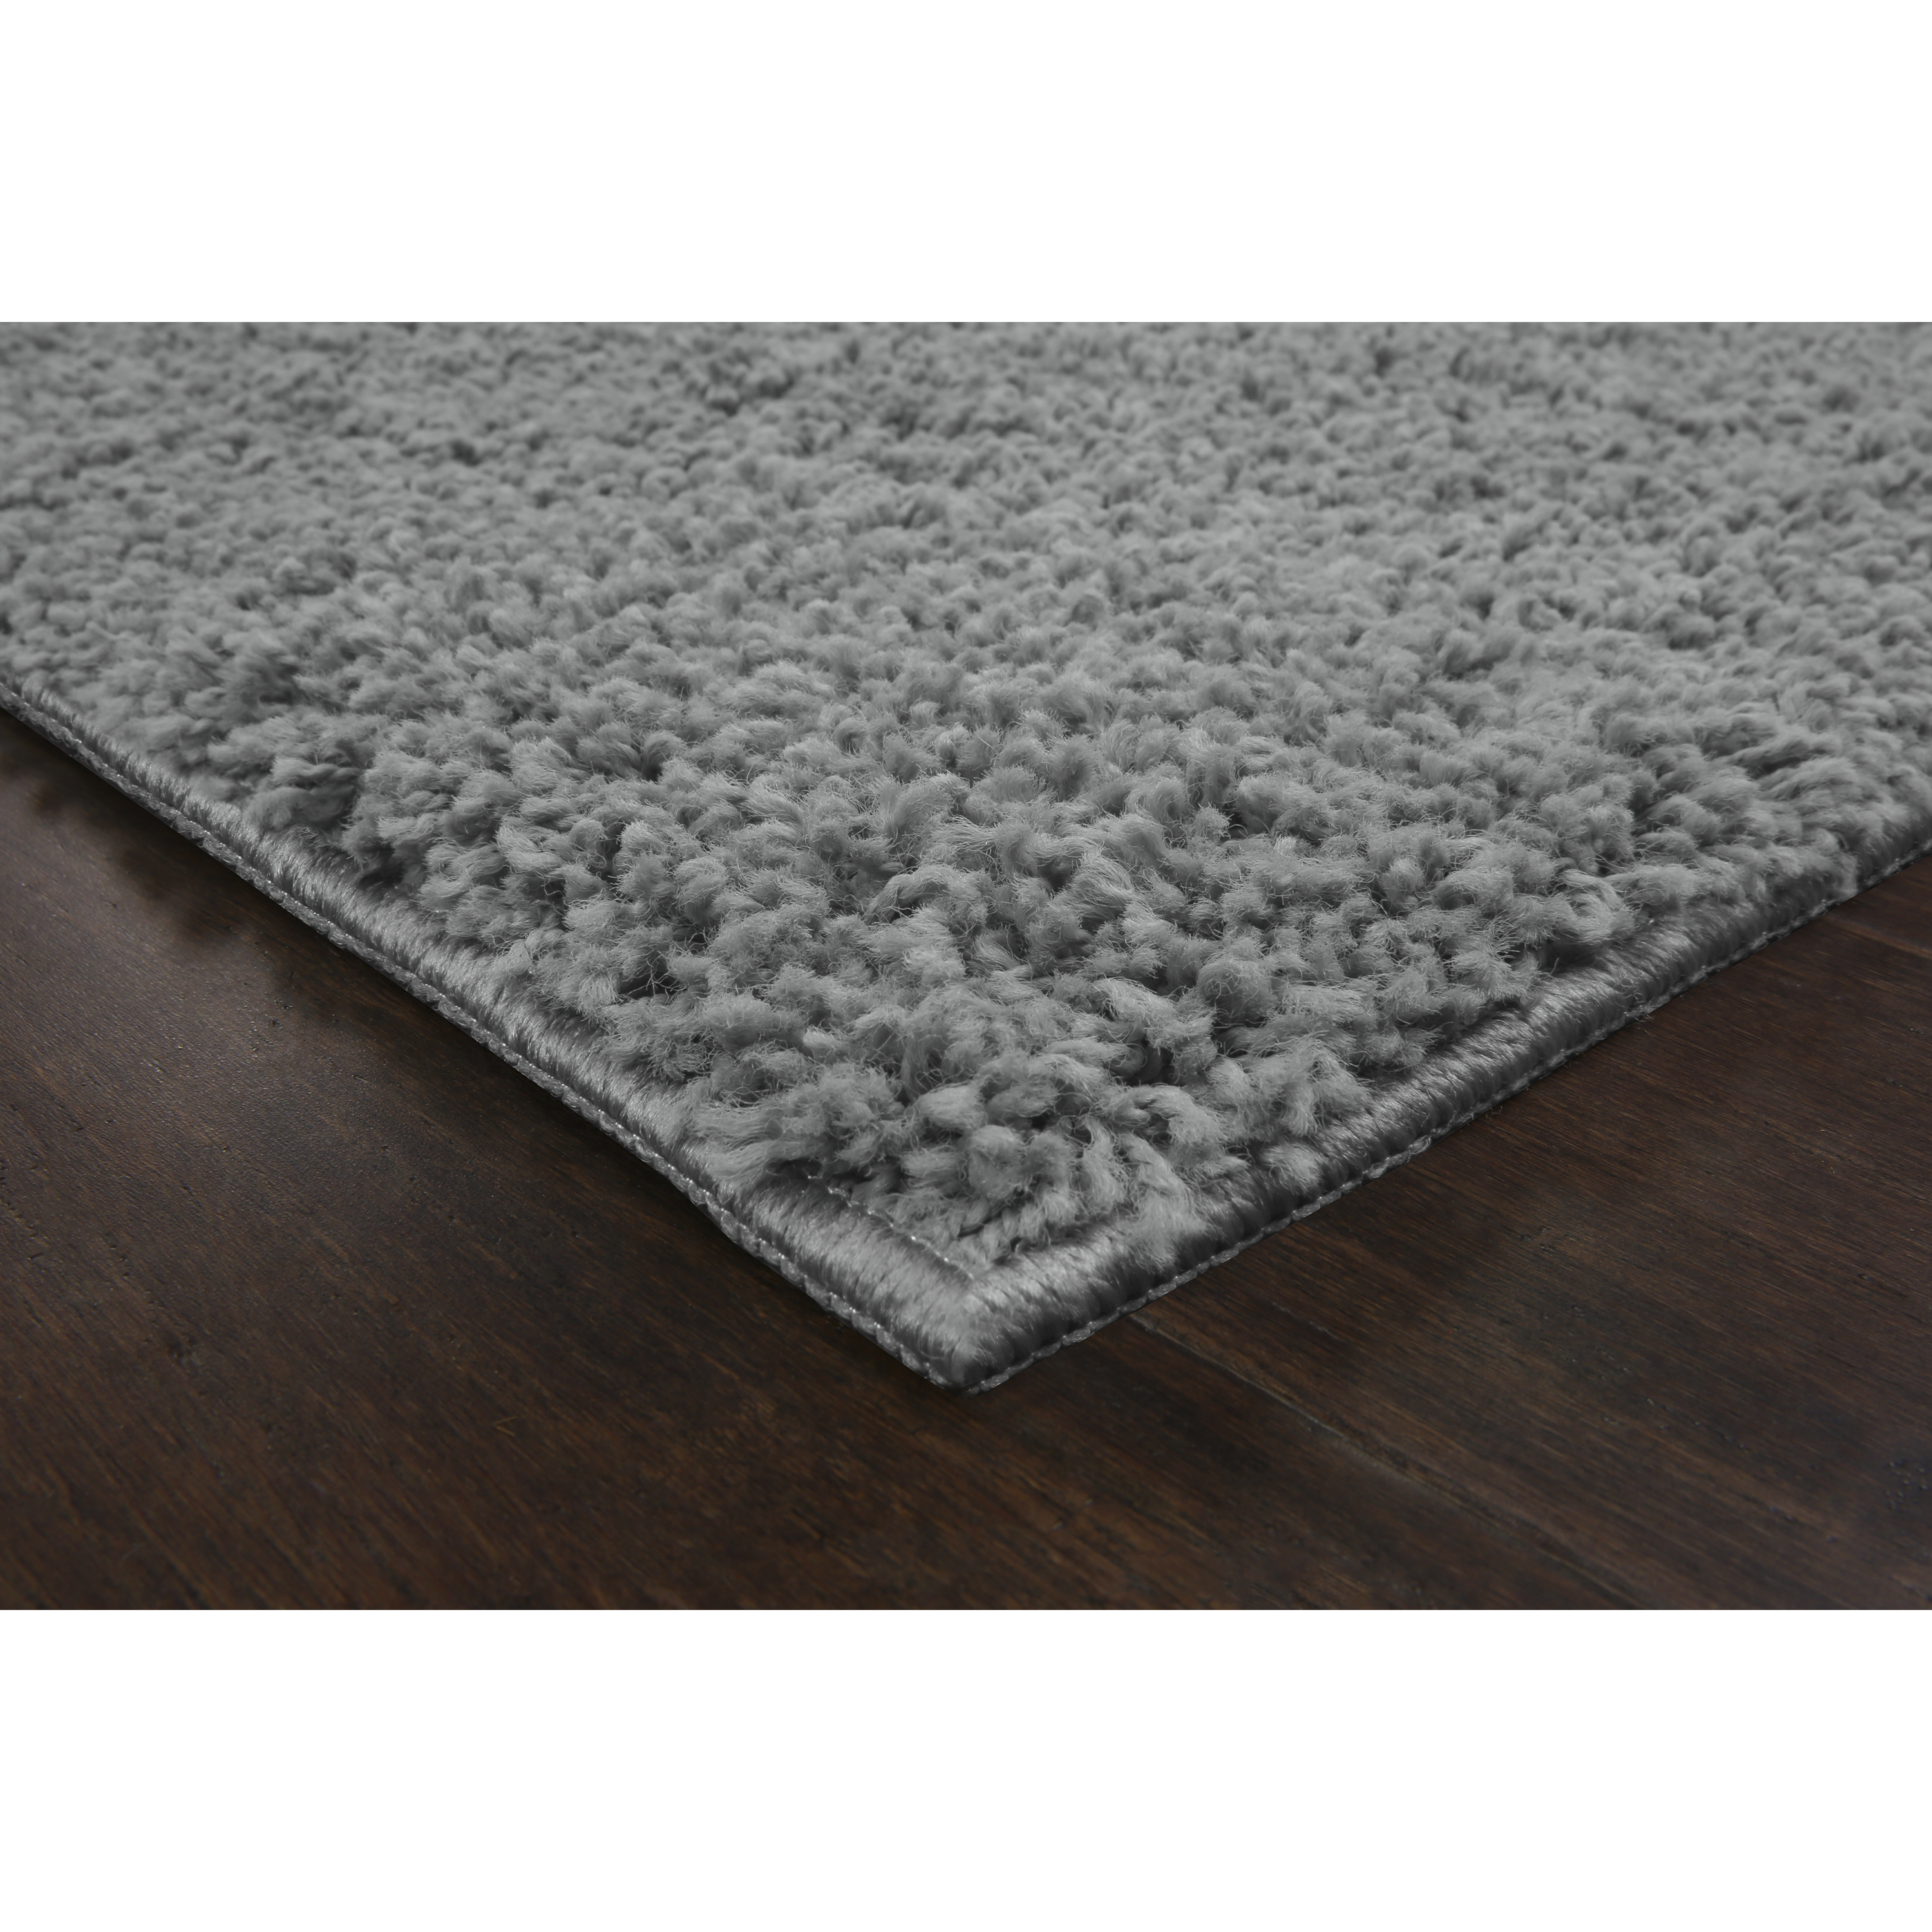 Captivating Mainstays Olefin Shag Area Rug Collection Image 3 Of 3